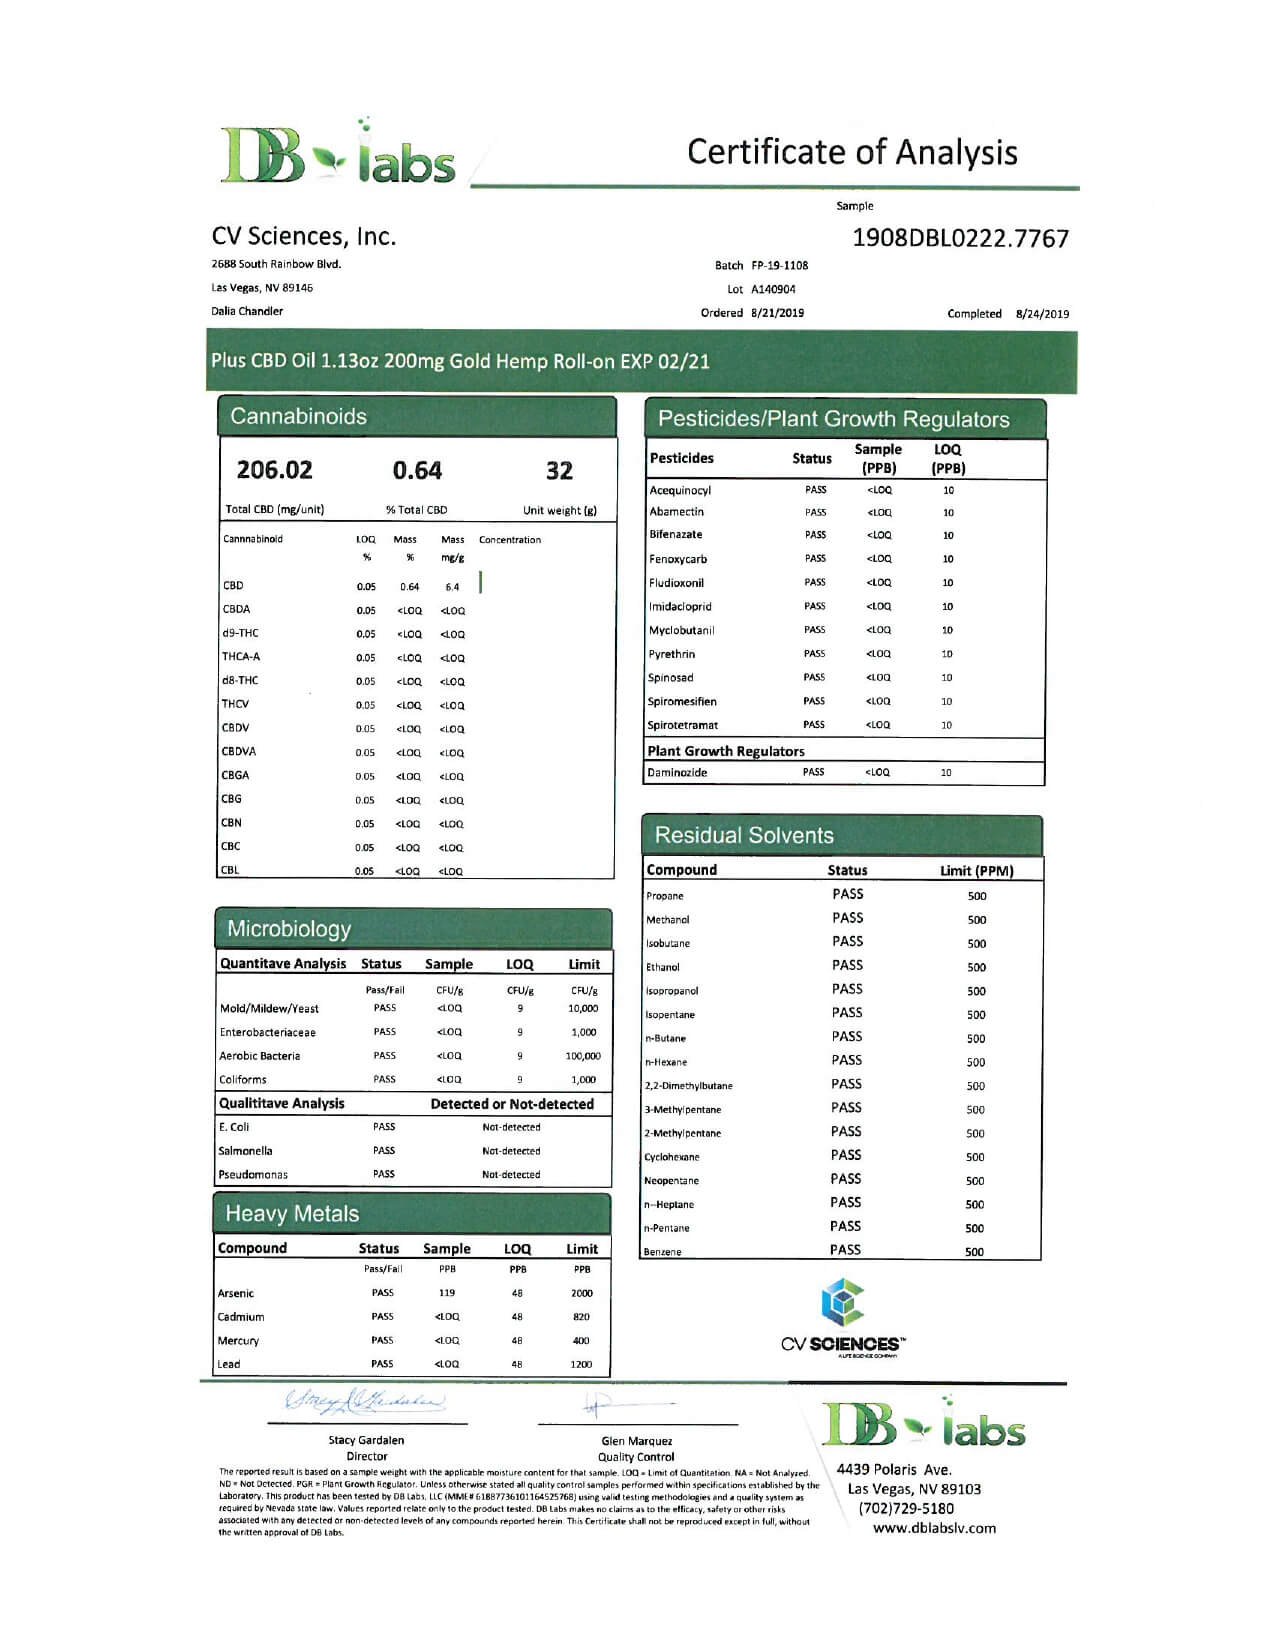 PlusCBD Oil CBD Topical Gold Roll On Relief Lab Report